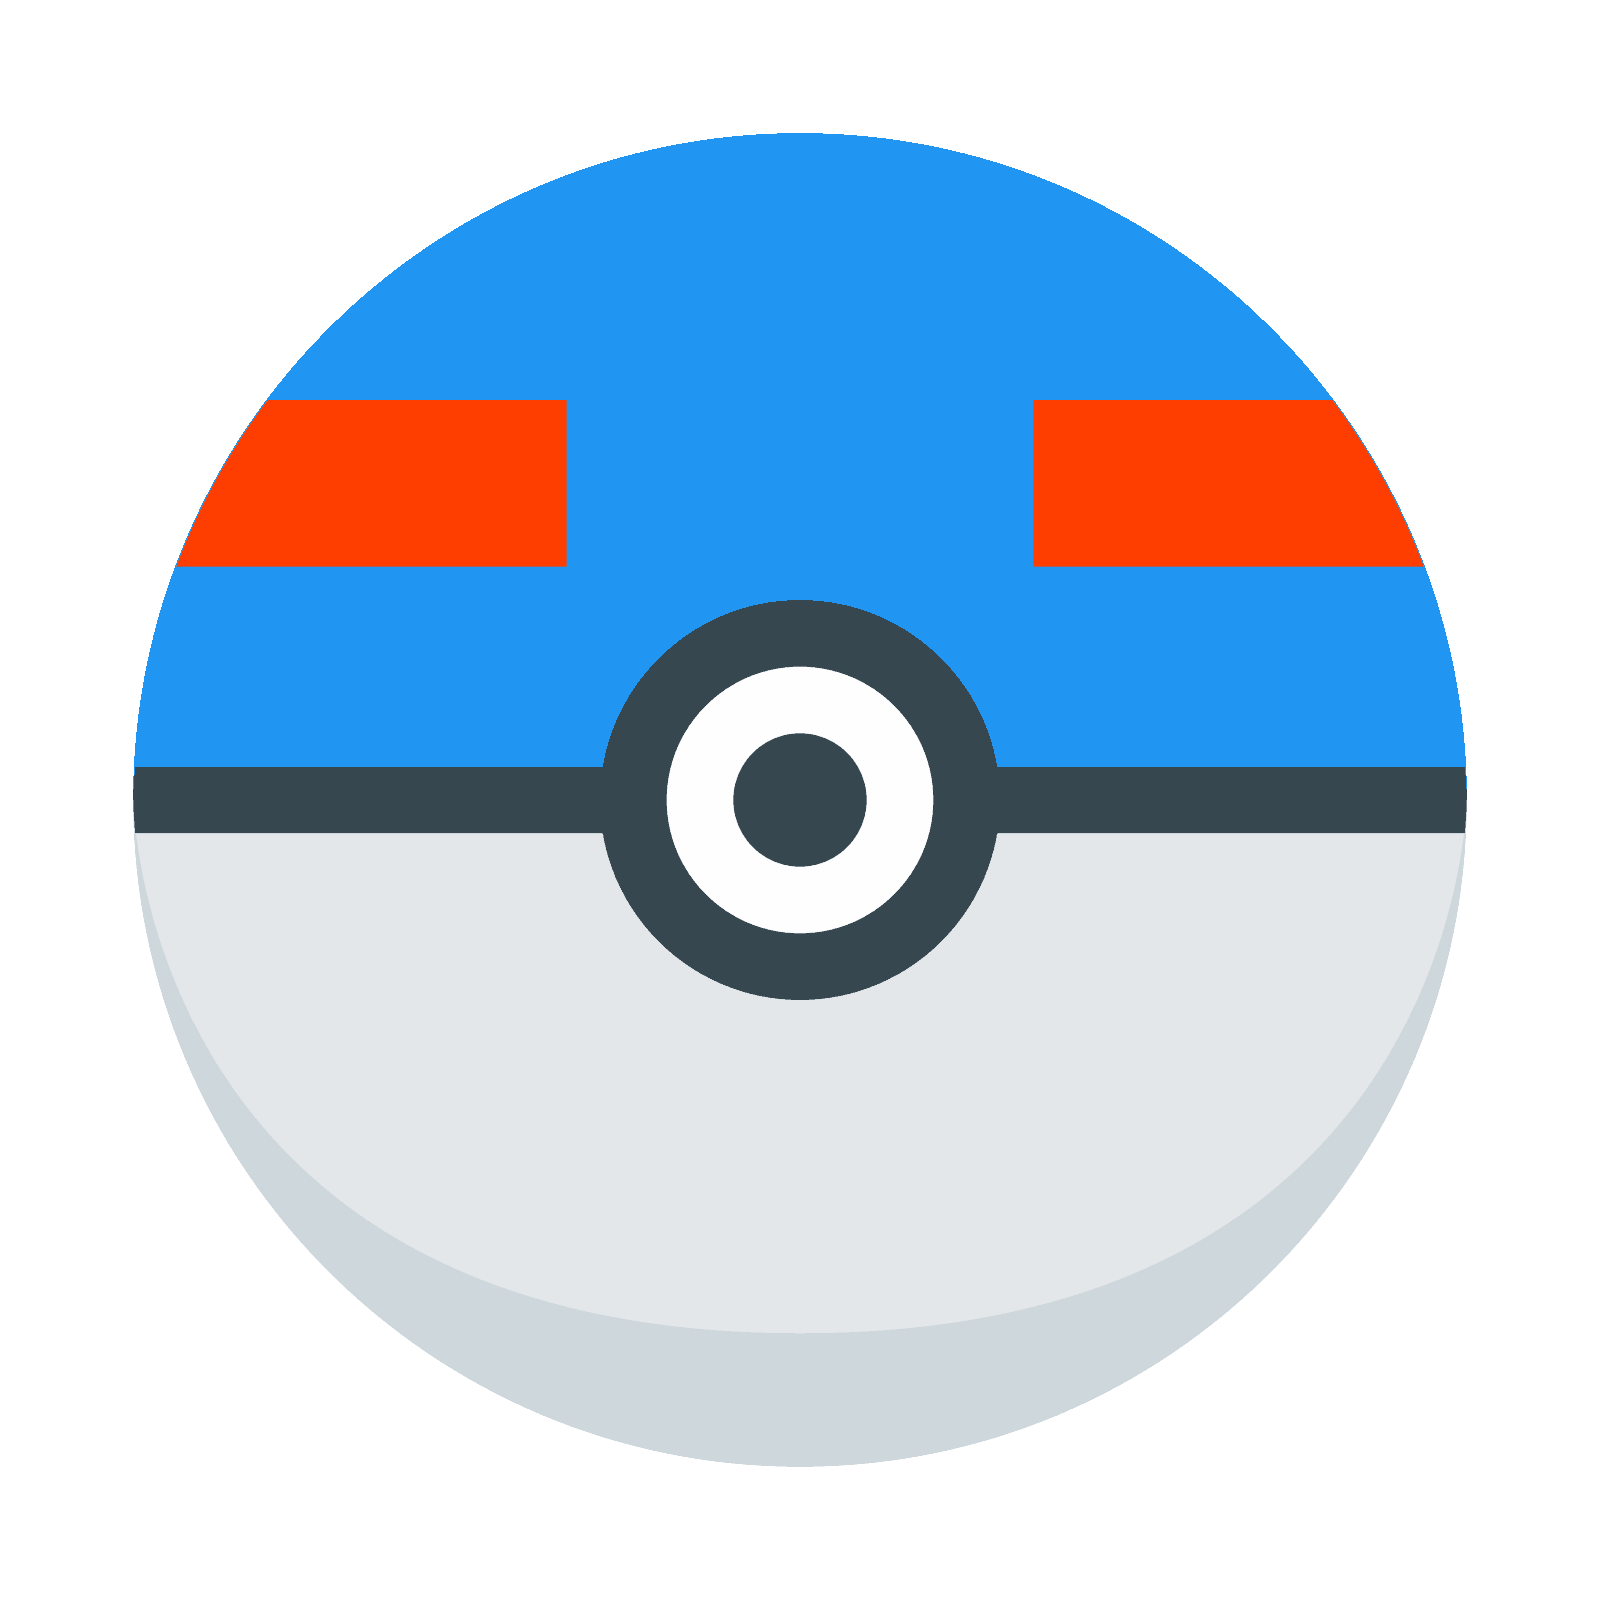 Pokeball clipart avatar. Superball icon free download